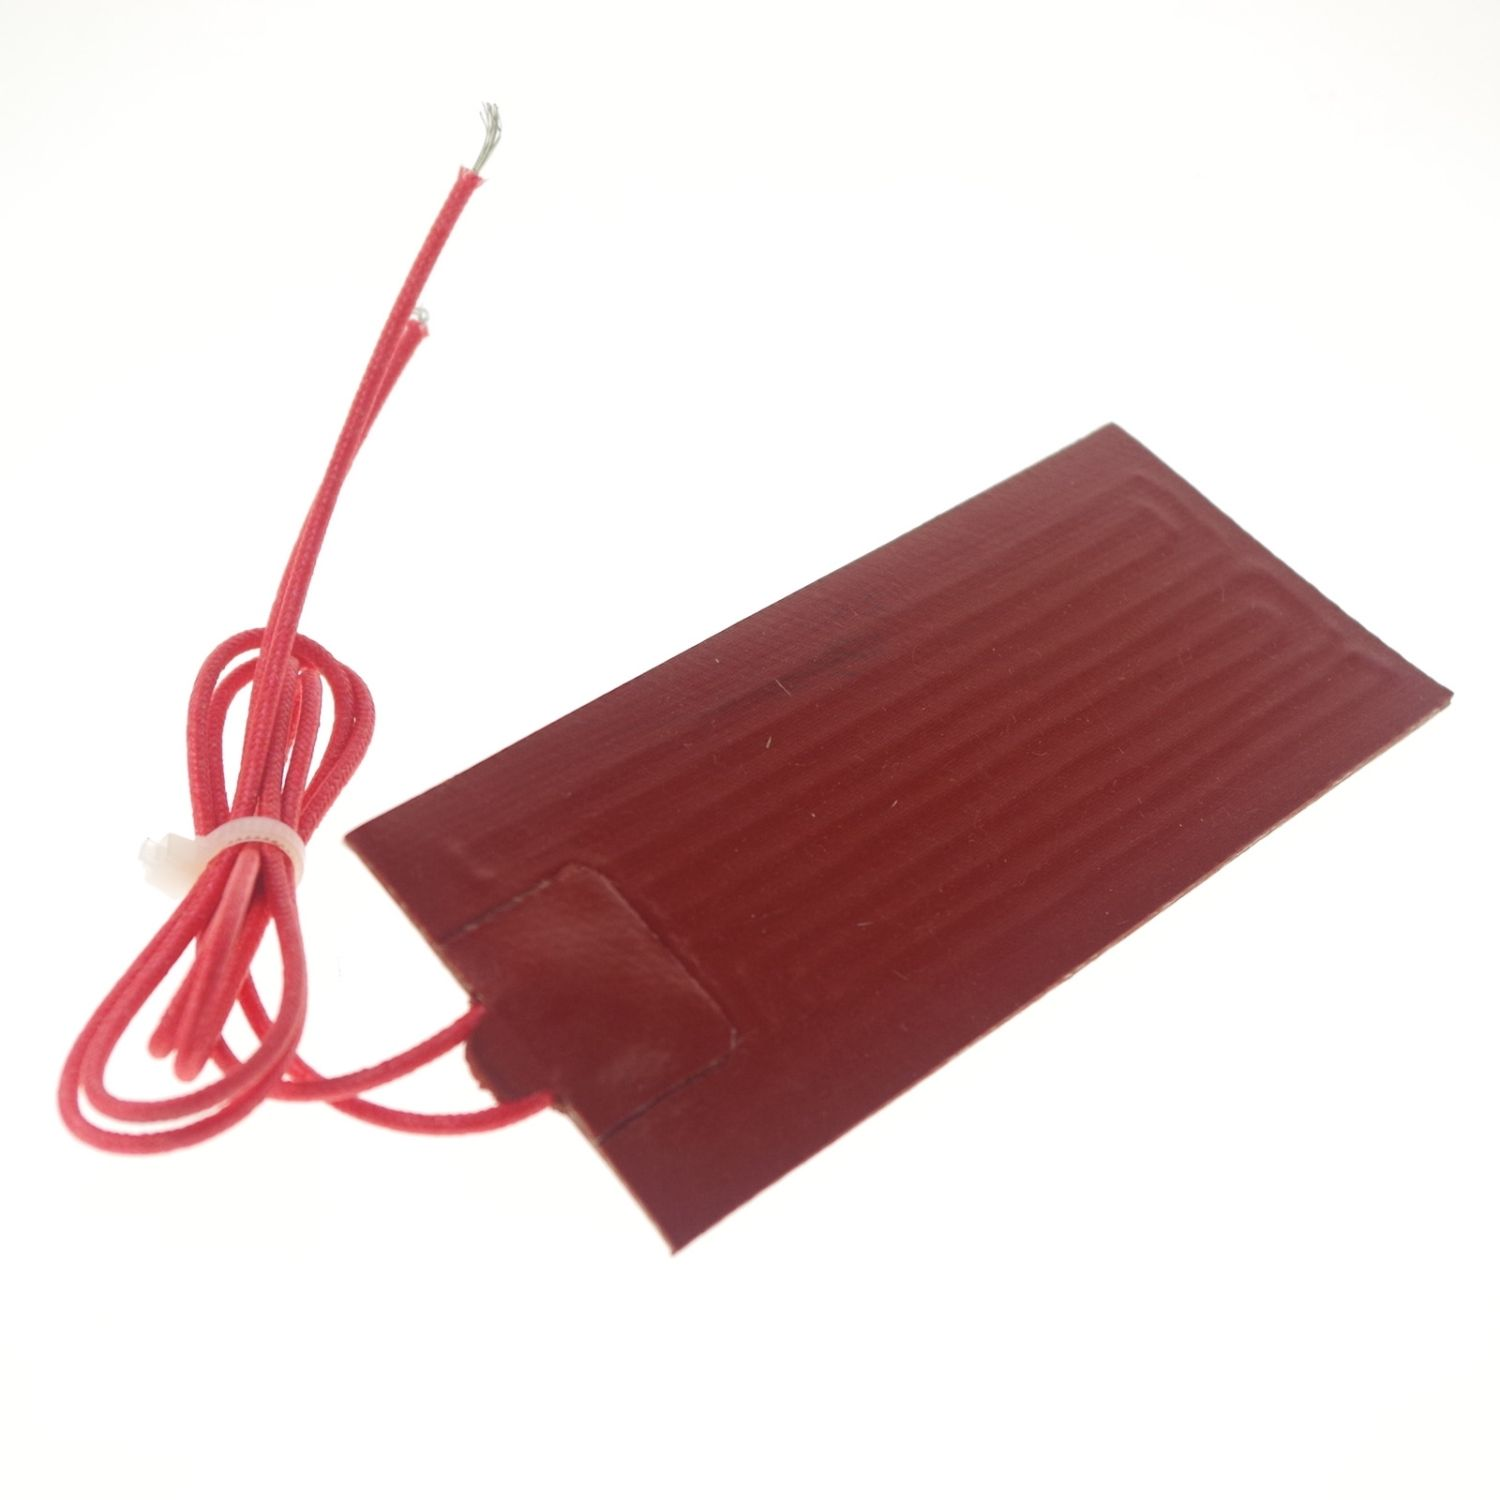 220V AC 100x150mm 50W Rectangle Flexible Waterproof Silicon Heater Pad For Oil Tank Electrical Wires 15x1000mm 75w 200 240v silicon heater strip belt for air conditioner compressor crankcase turbine electrical wires